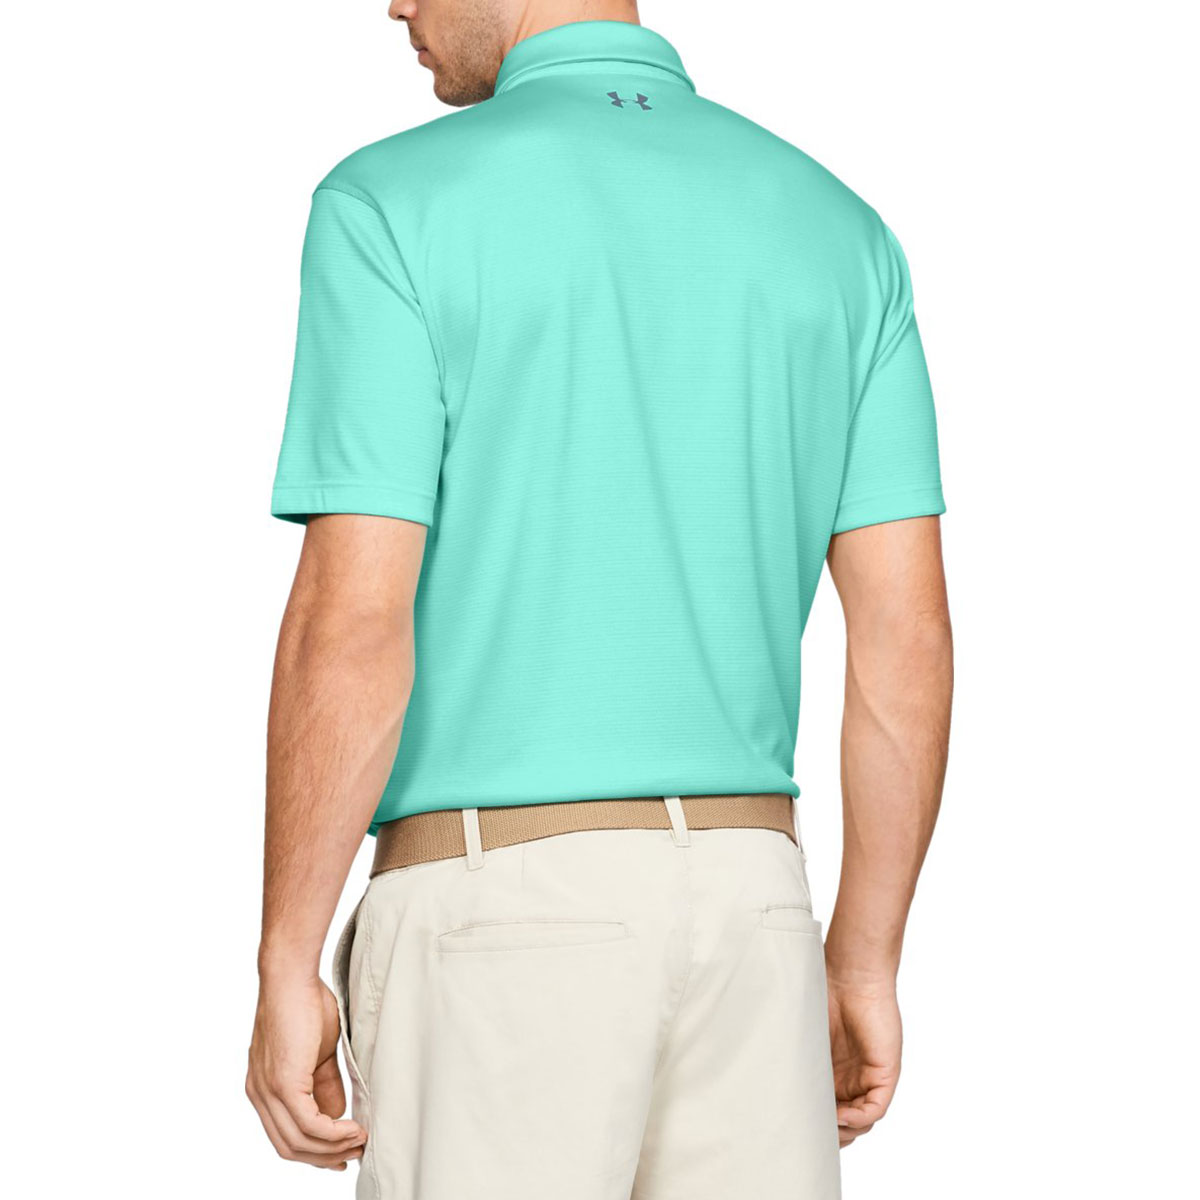 Under-Armour-Mens-2019-Golf-Tech-Wicking-Textured-Soft-Light-Polo-Shirt thumbnail 57